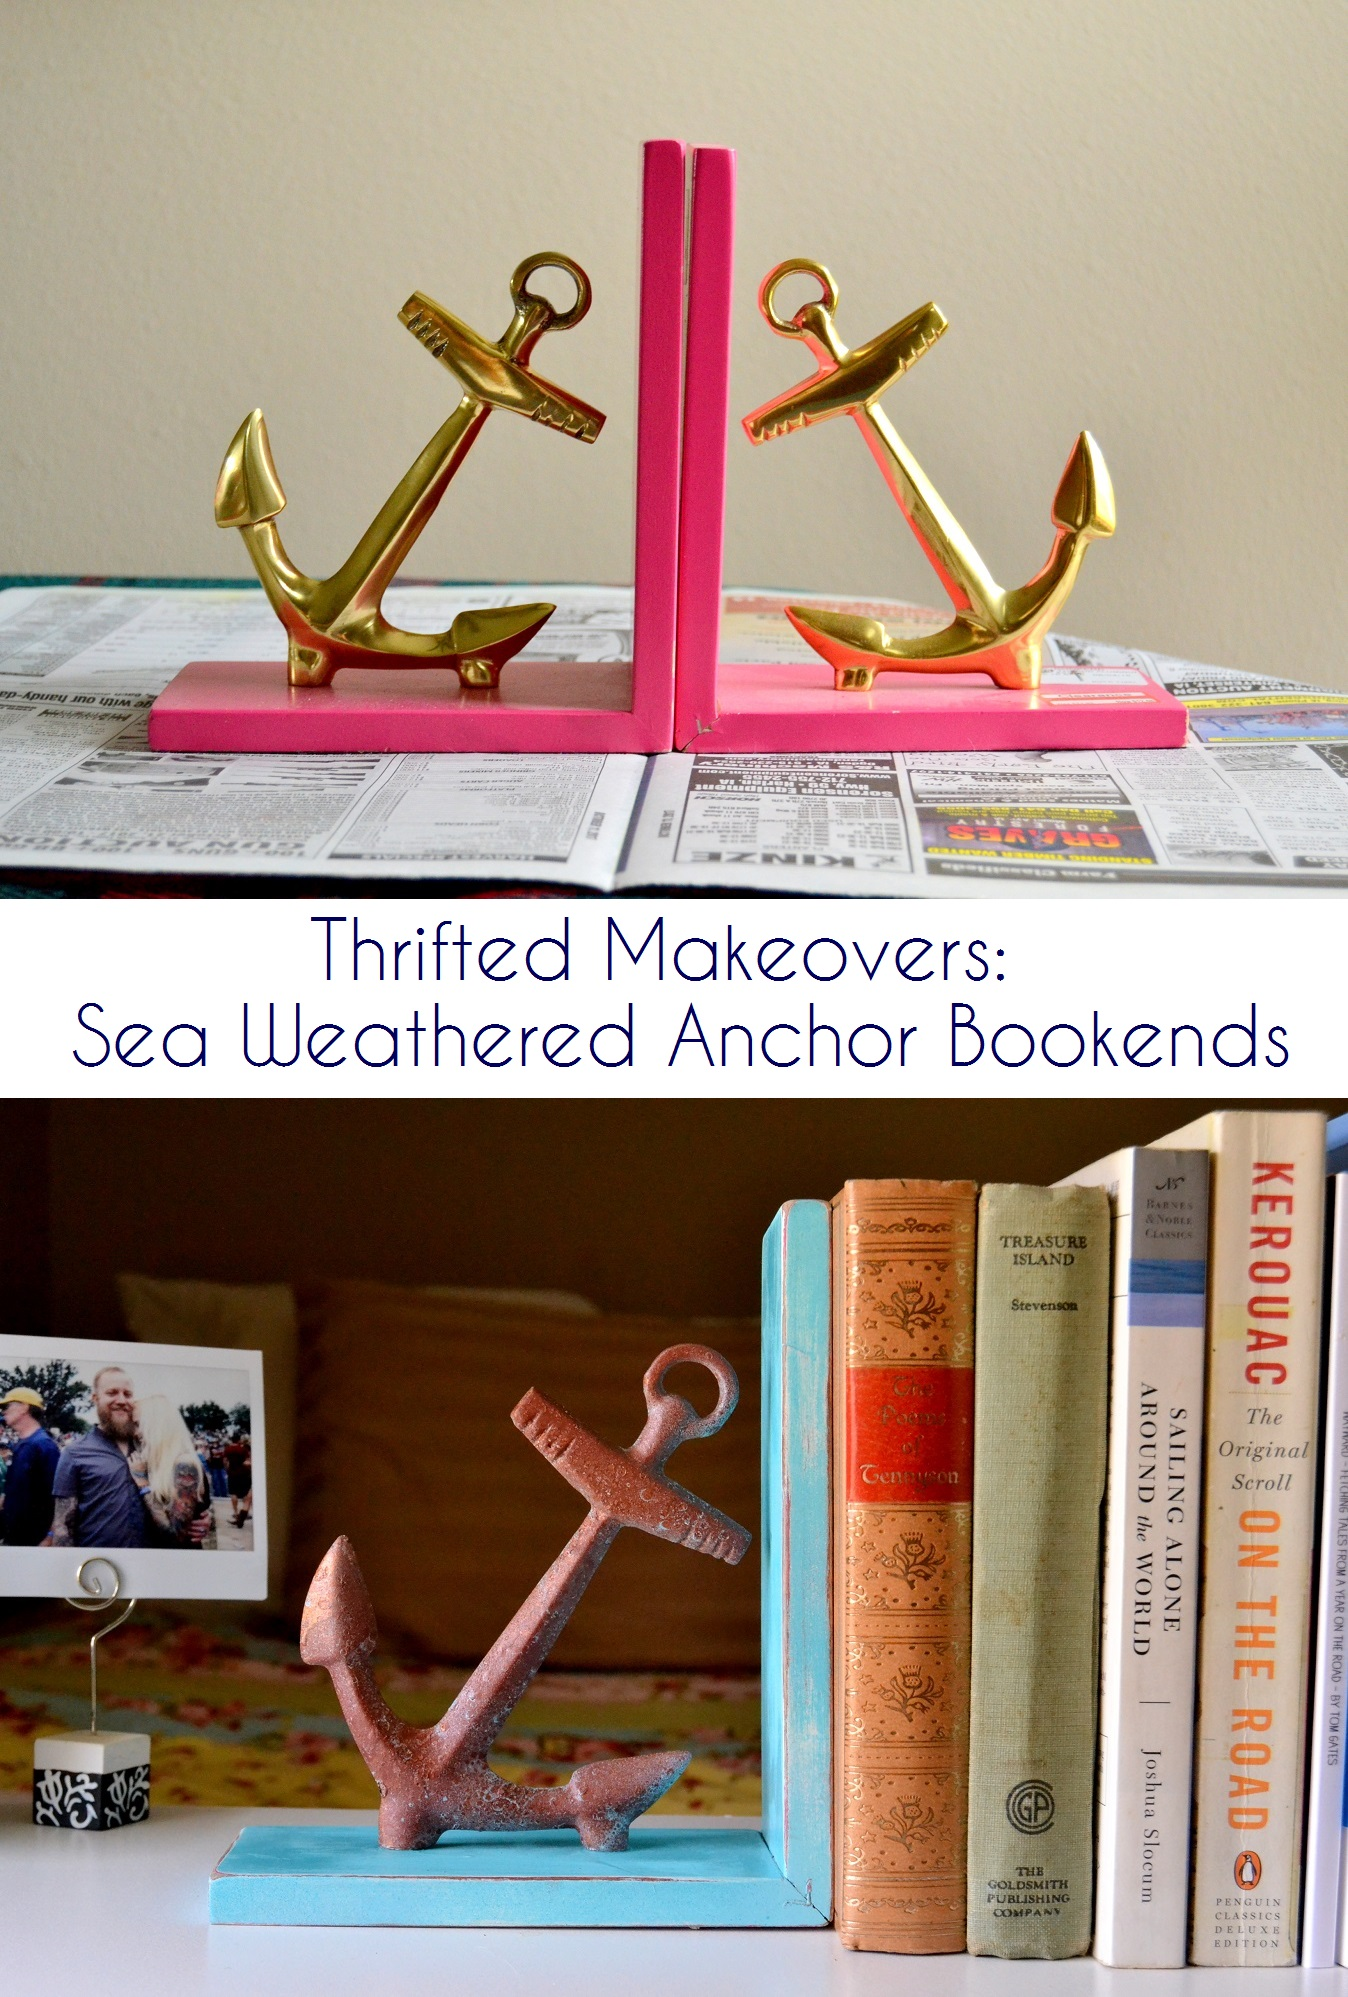 Thrifted Makeovers: Sea Weathered Anchor Bookends